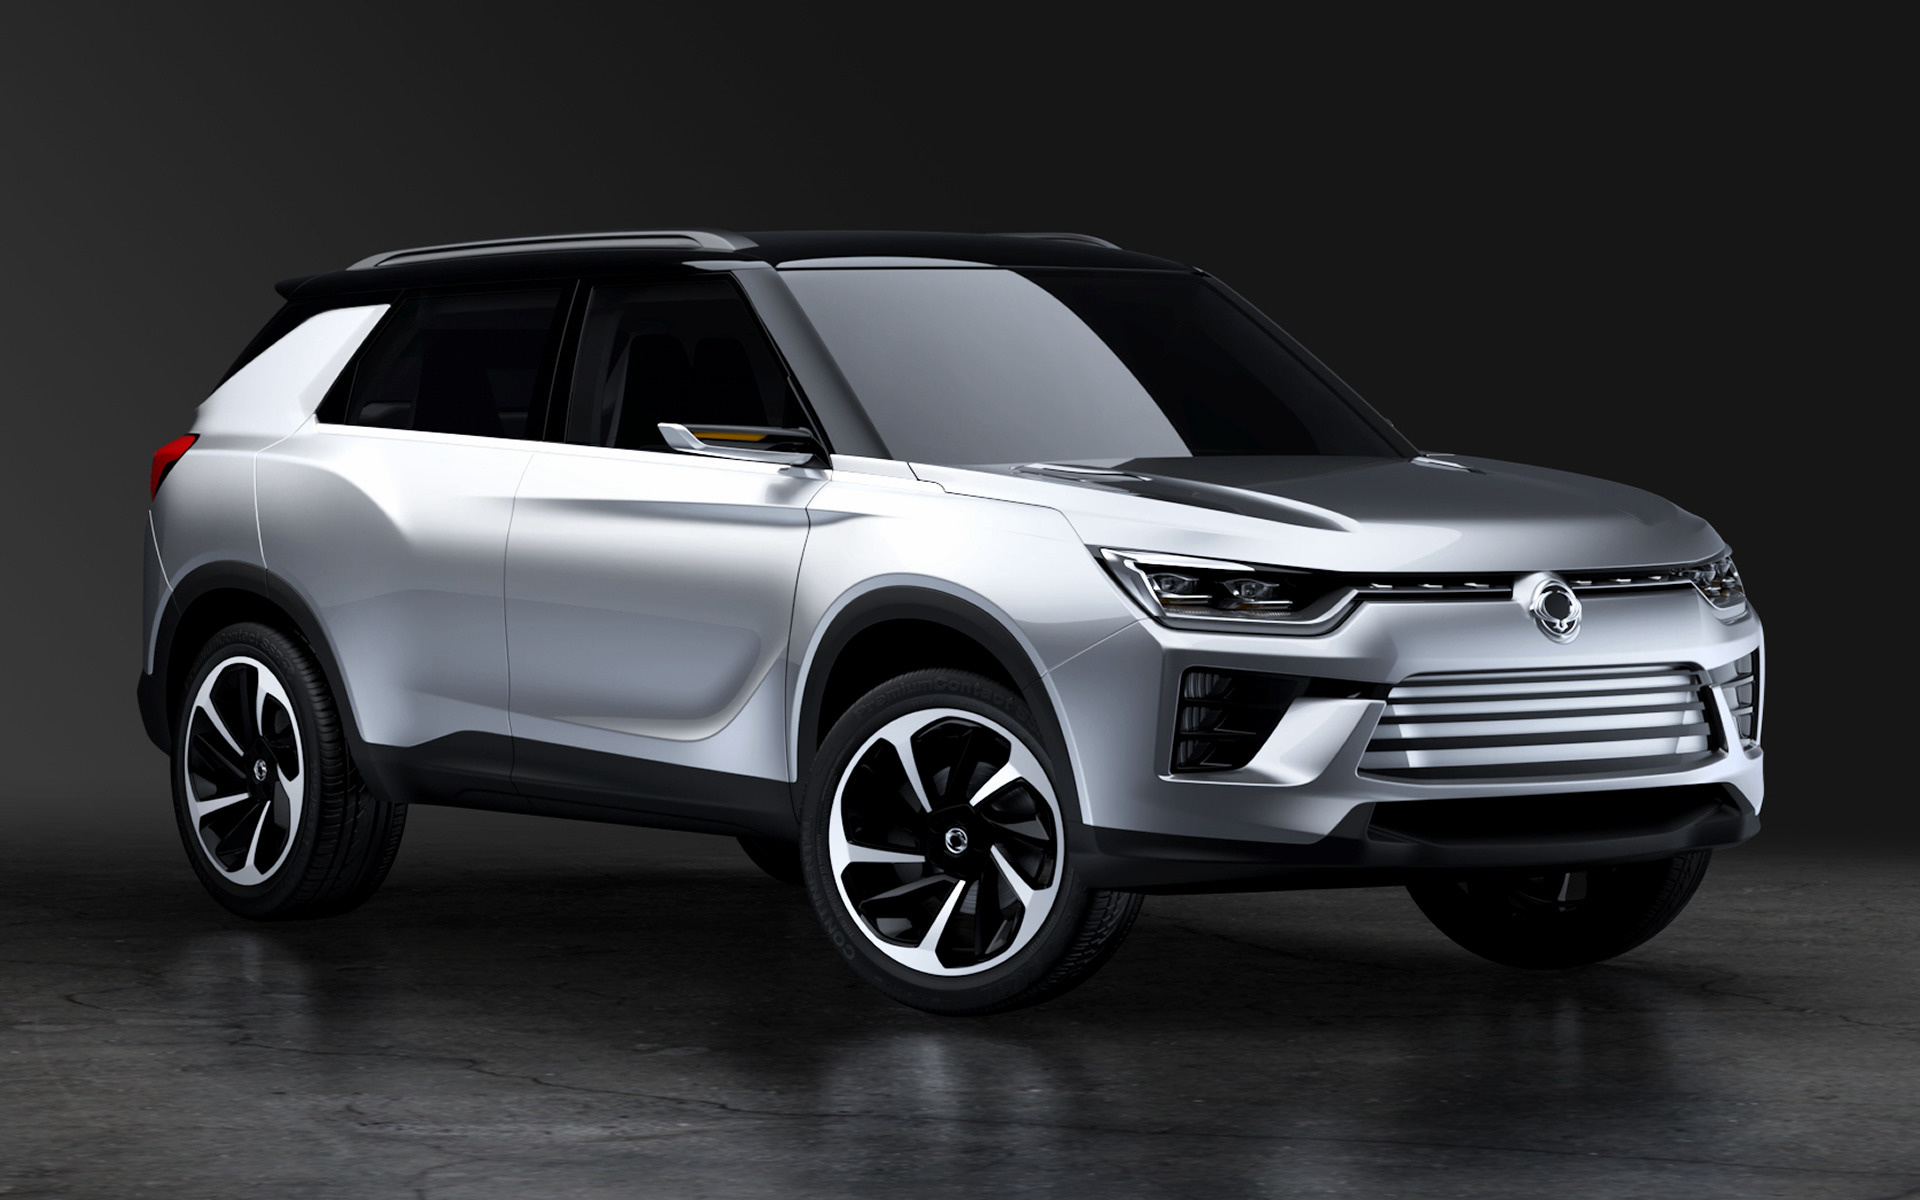 2016 SsangYong SIV-2 Concept - Wallpapers and HD Images ...